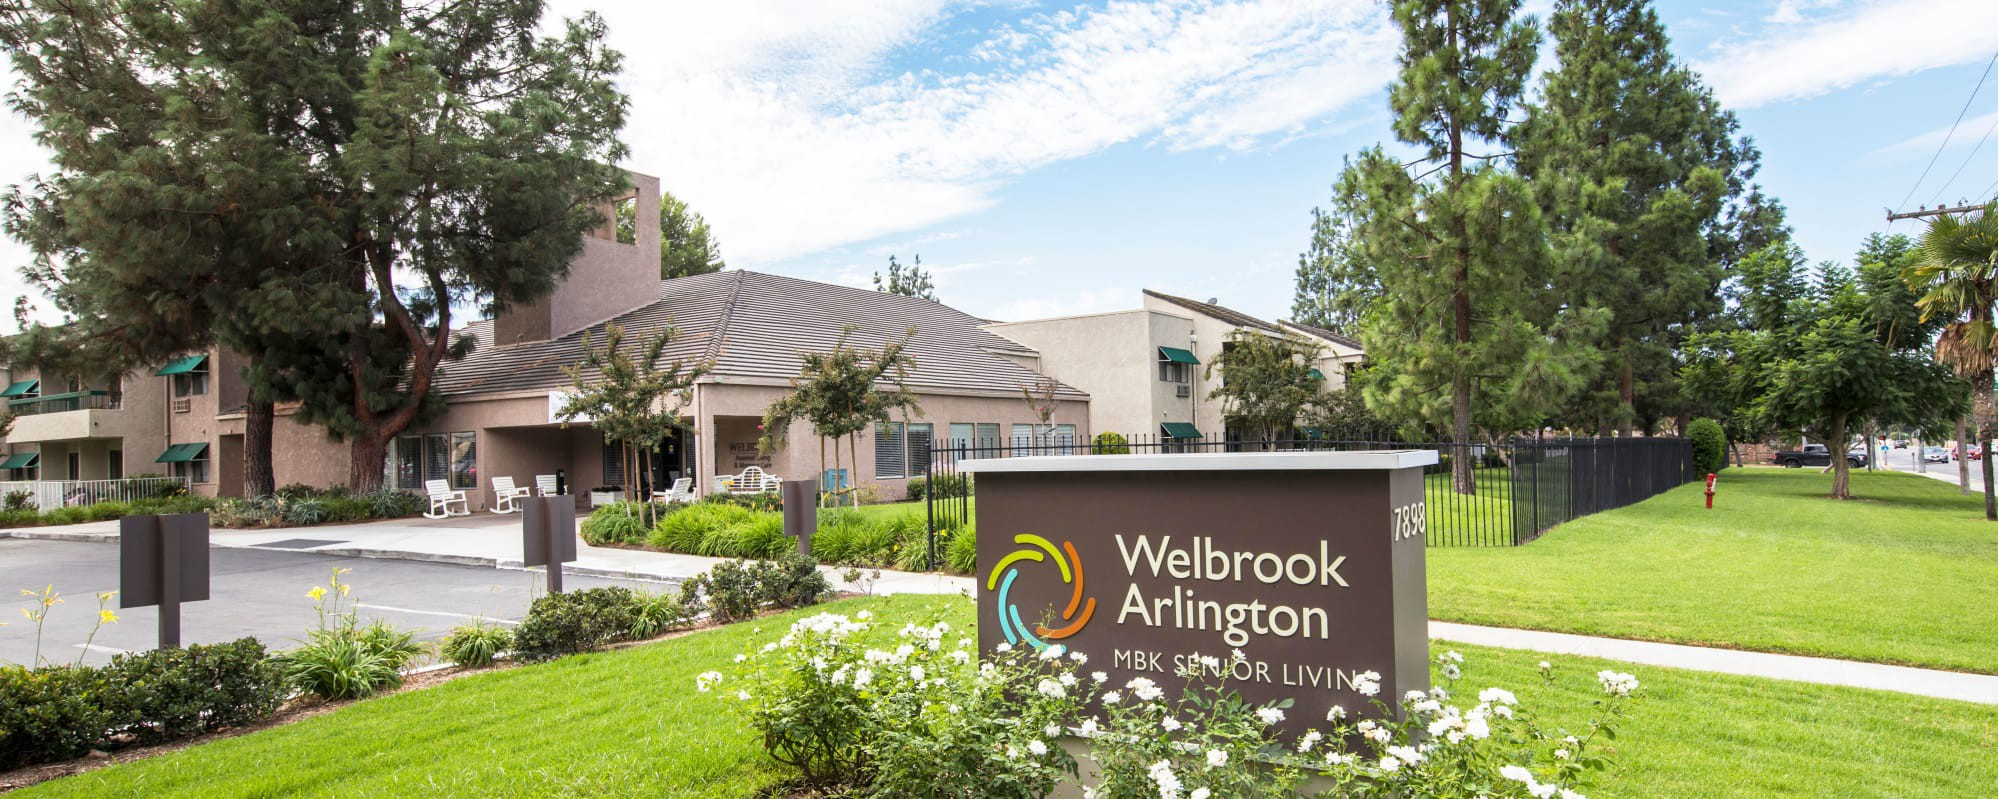 Apartments Near Cal Baptist Welbrook Arlington Independent and Assisted Senior Living for California Baptist University Students in Riverside, CA